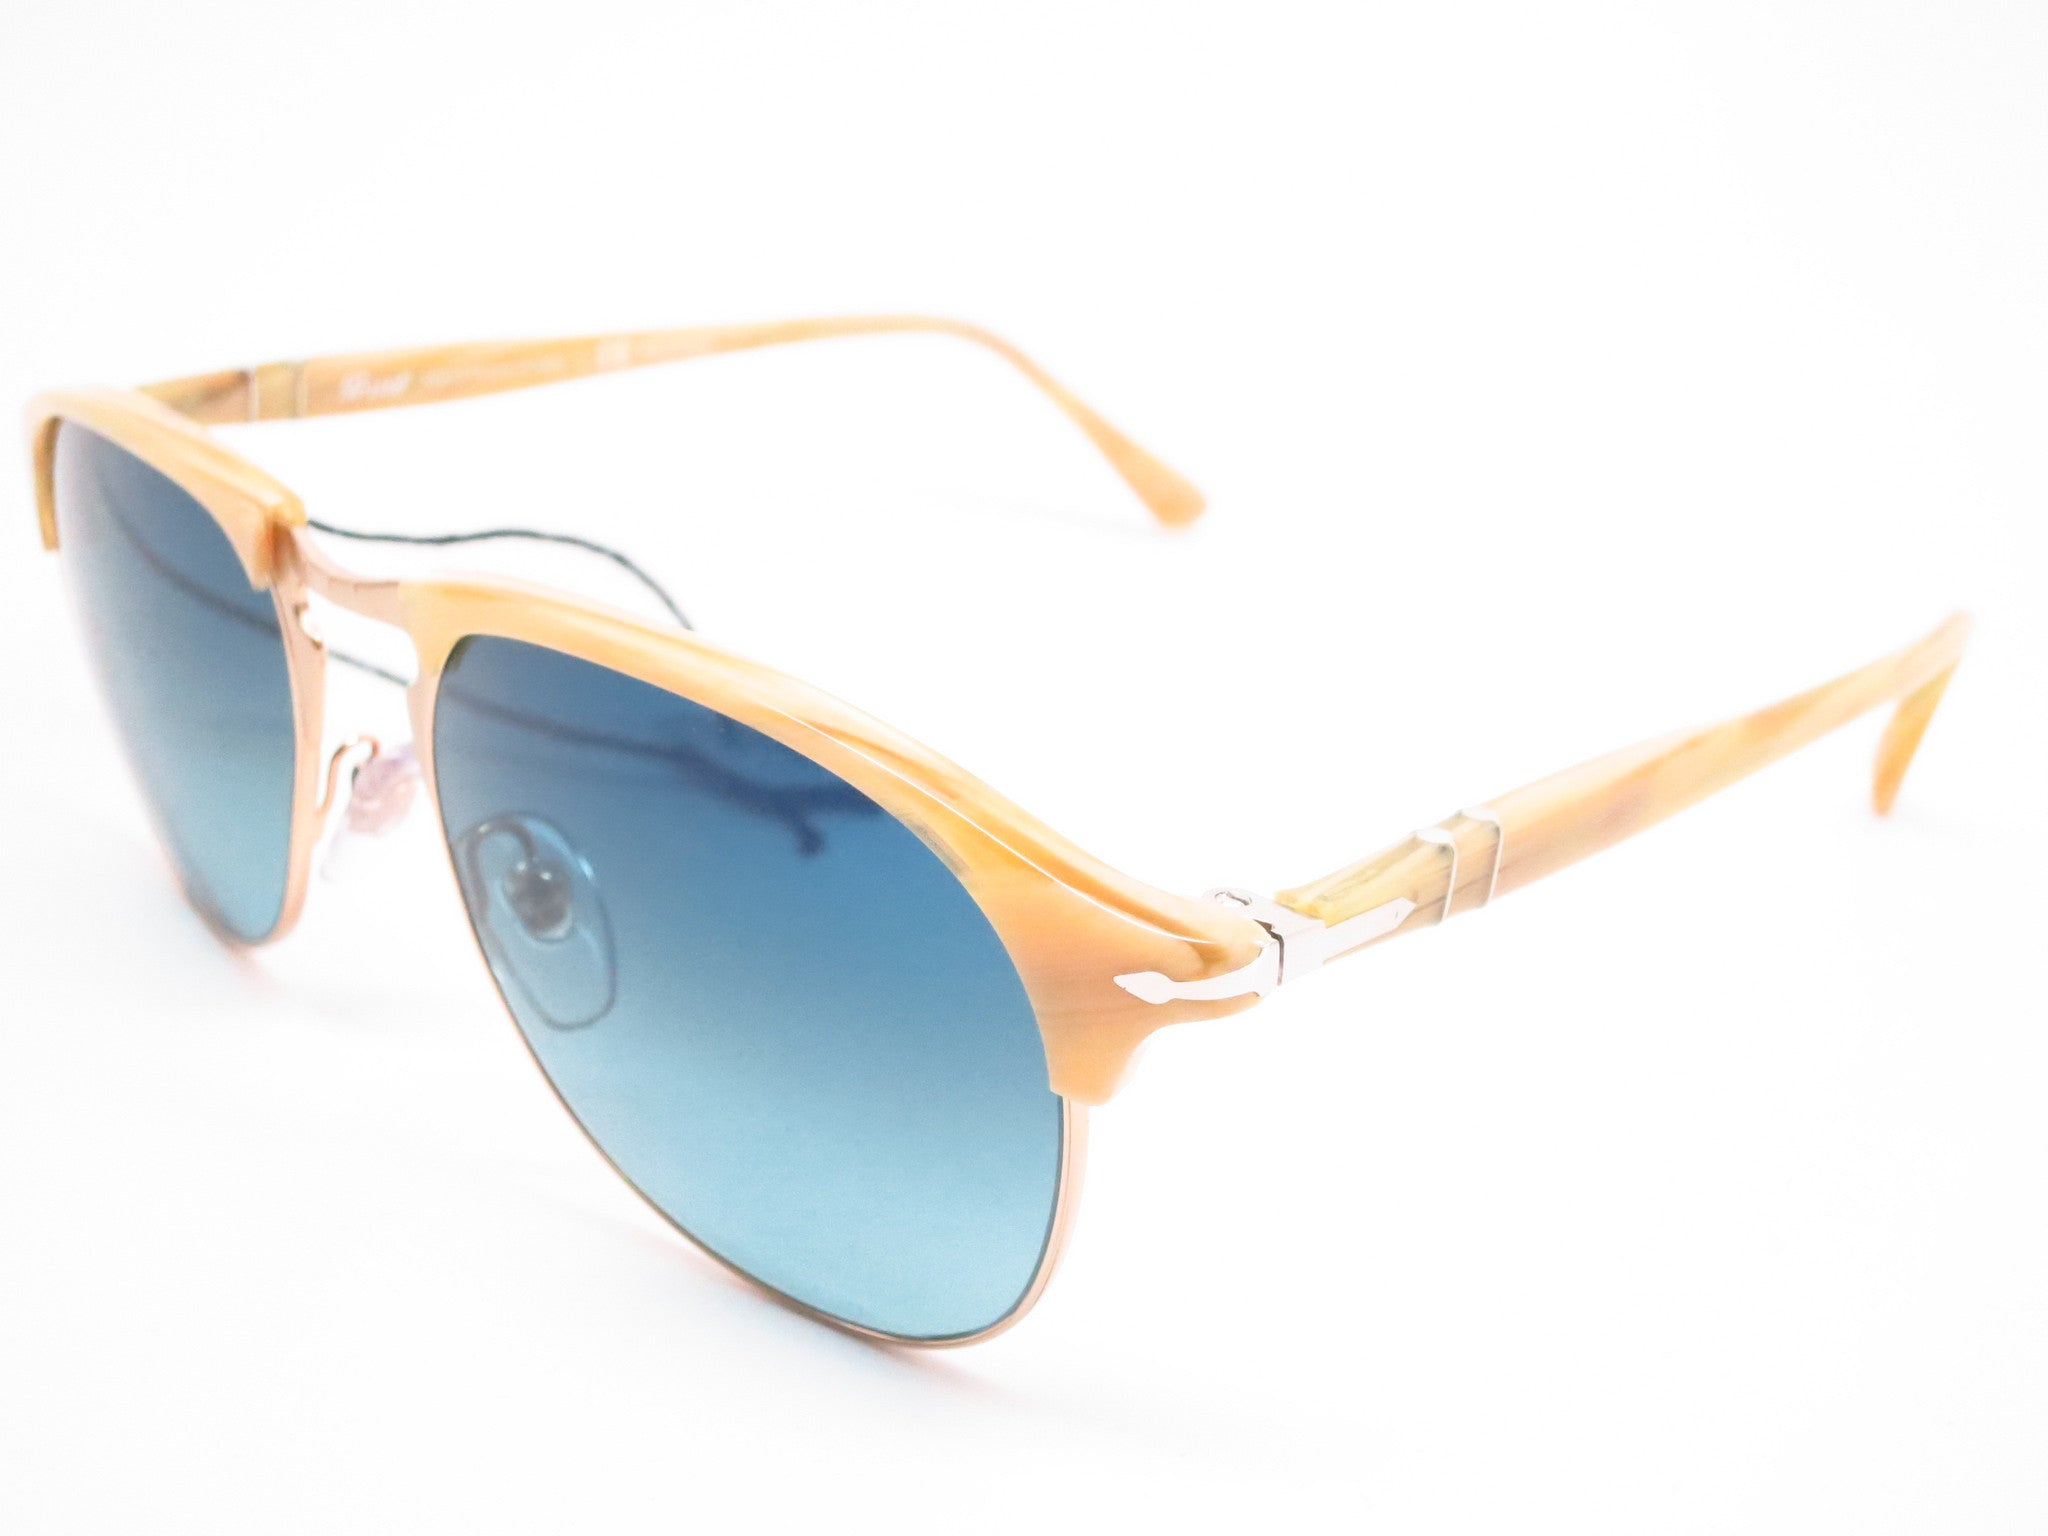 f30ac80317 Buy Authentic Persol PO 8649S 1046 S3 Light Horn Polarized ...